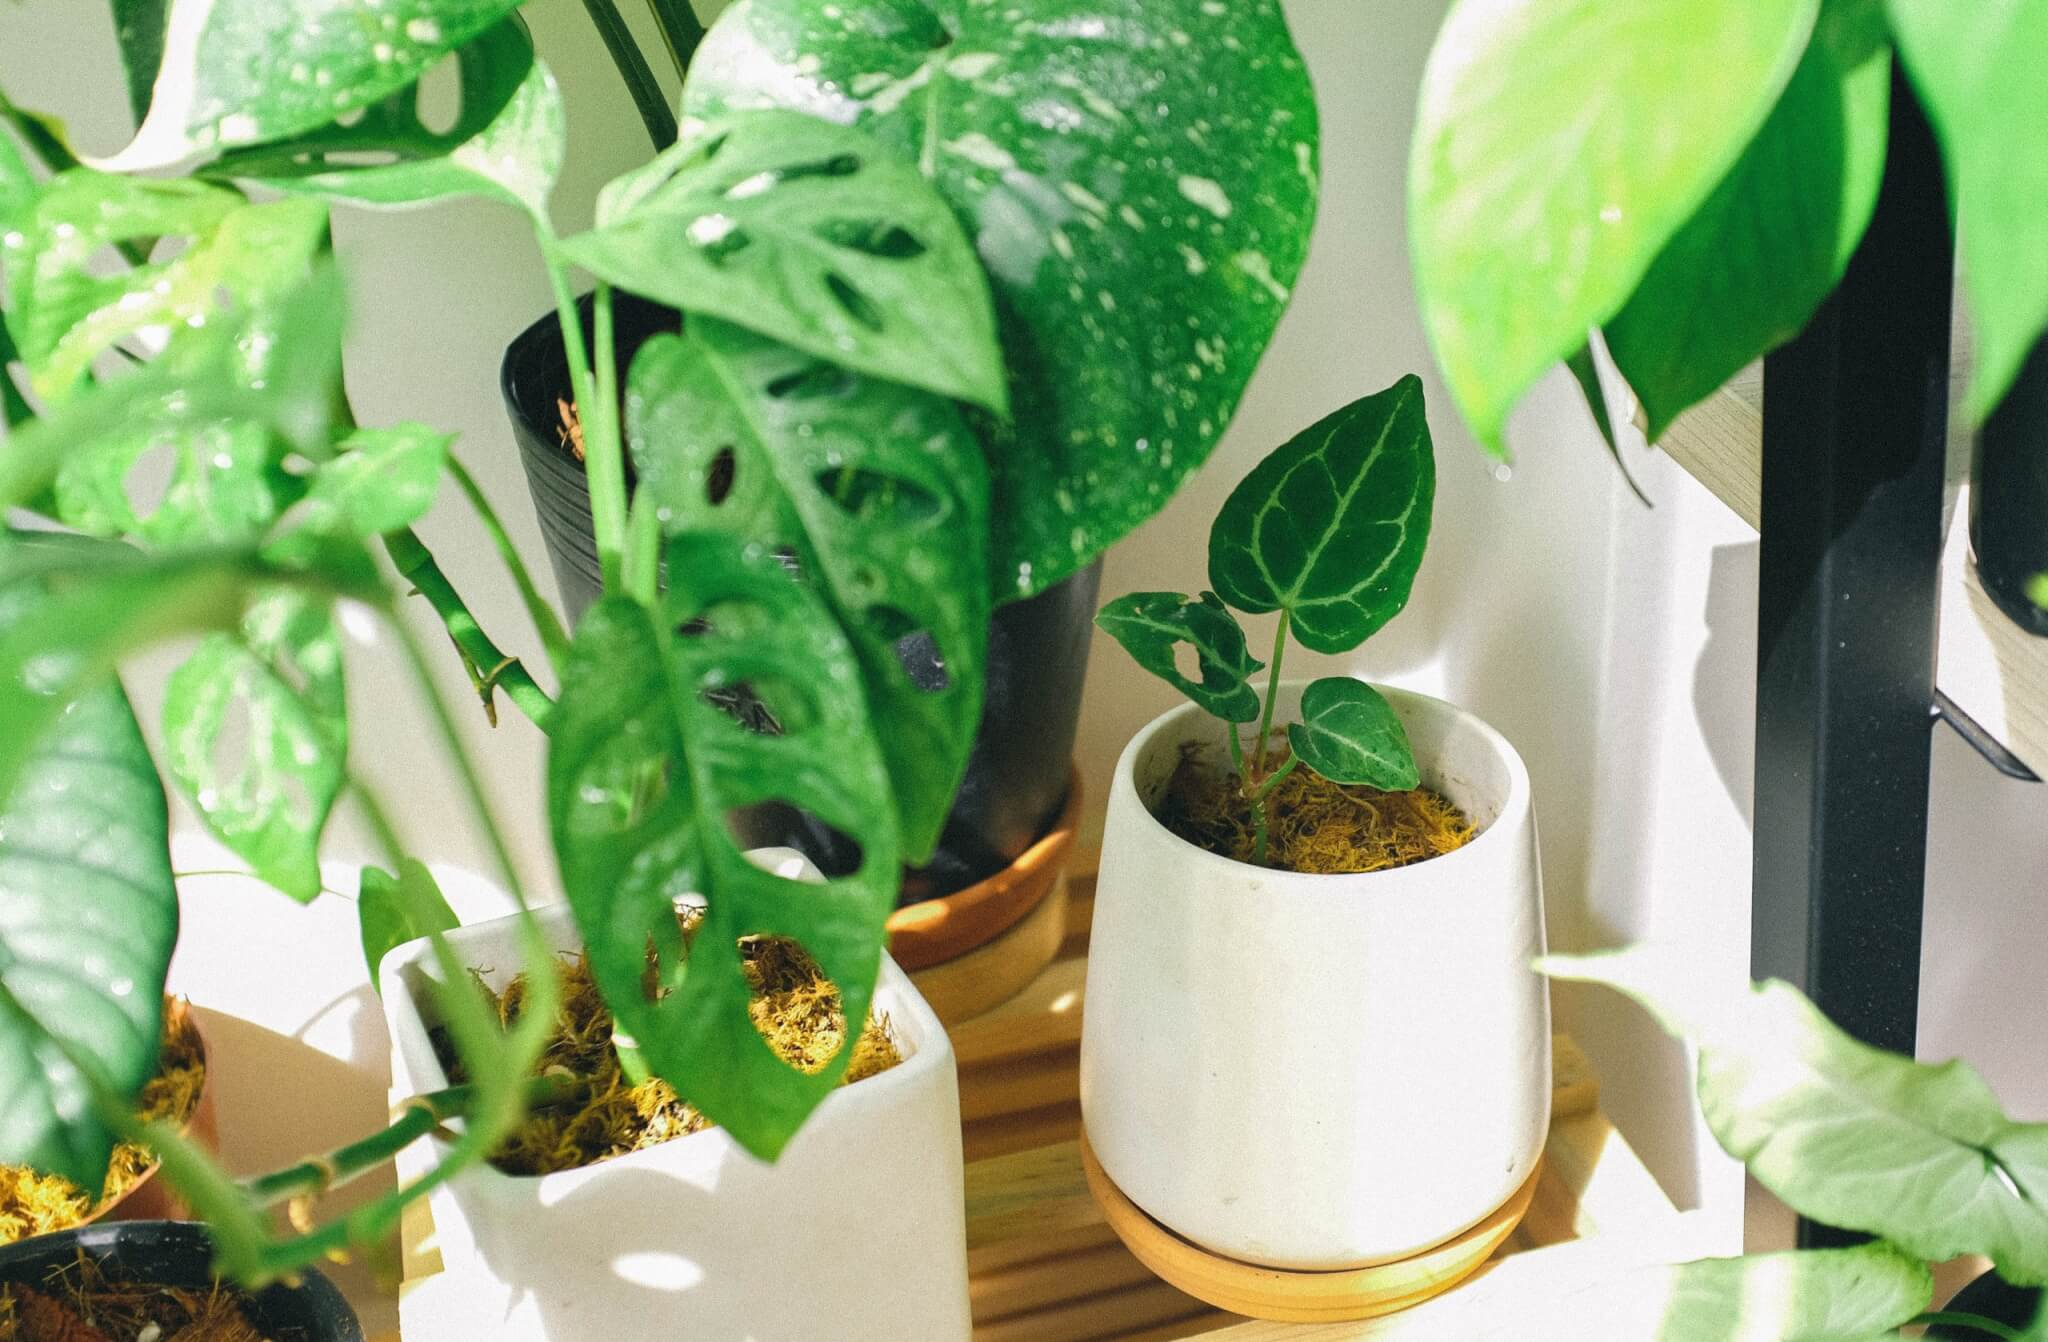 Houseplants in white containers sitting on a wood shelf